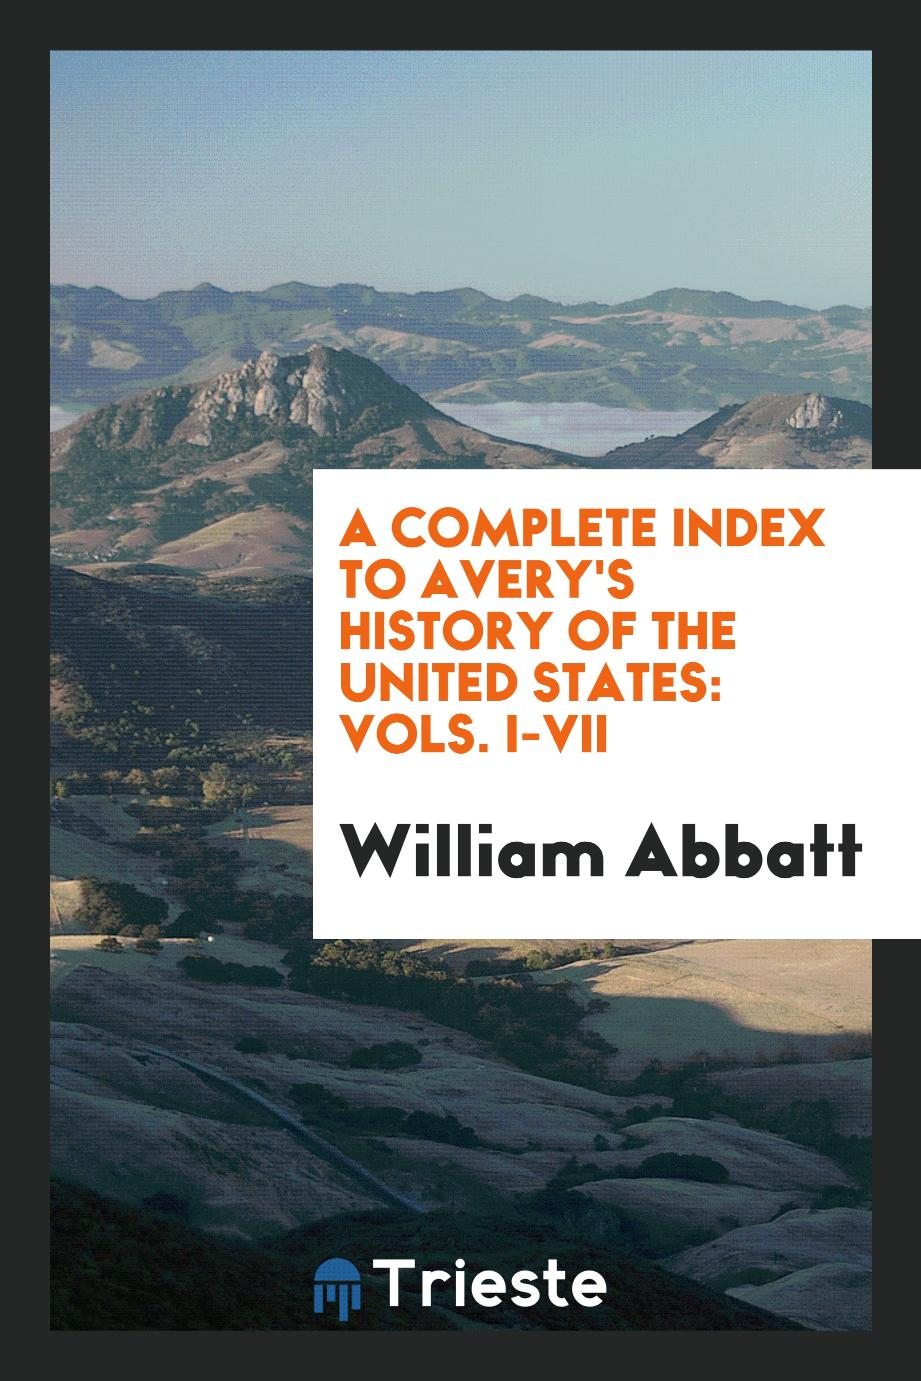 A complete index to Avery's History of the United States: vols. I-VII